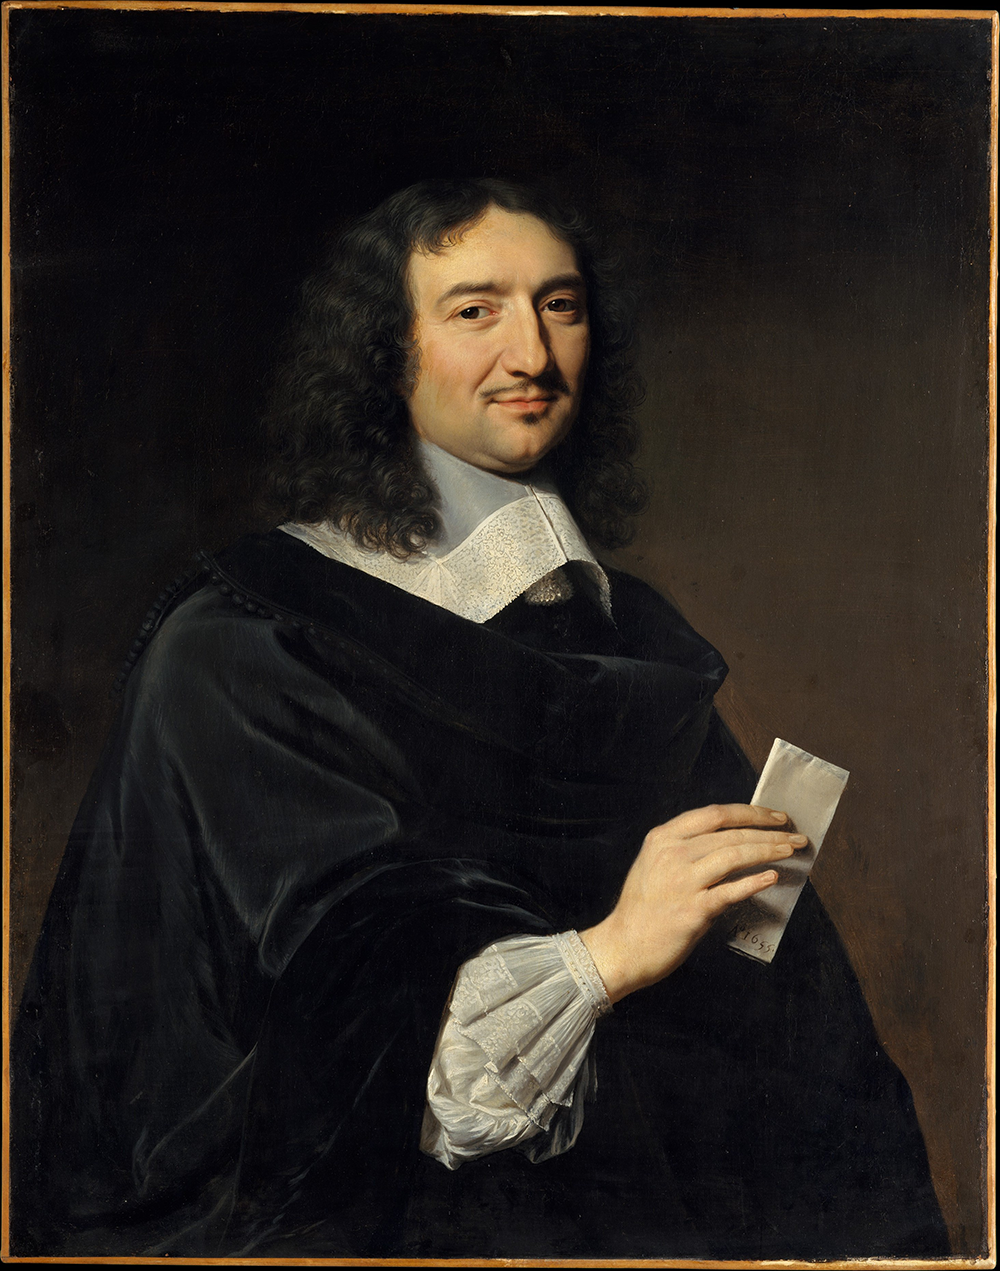 Jean-Baptiste Colbert (1619–1683), by Philippe de Champaigne, 1655. The Metropolitan Museum of Art, Gift of The Wildenstein Foundation Inc., 1951.